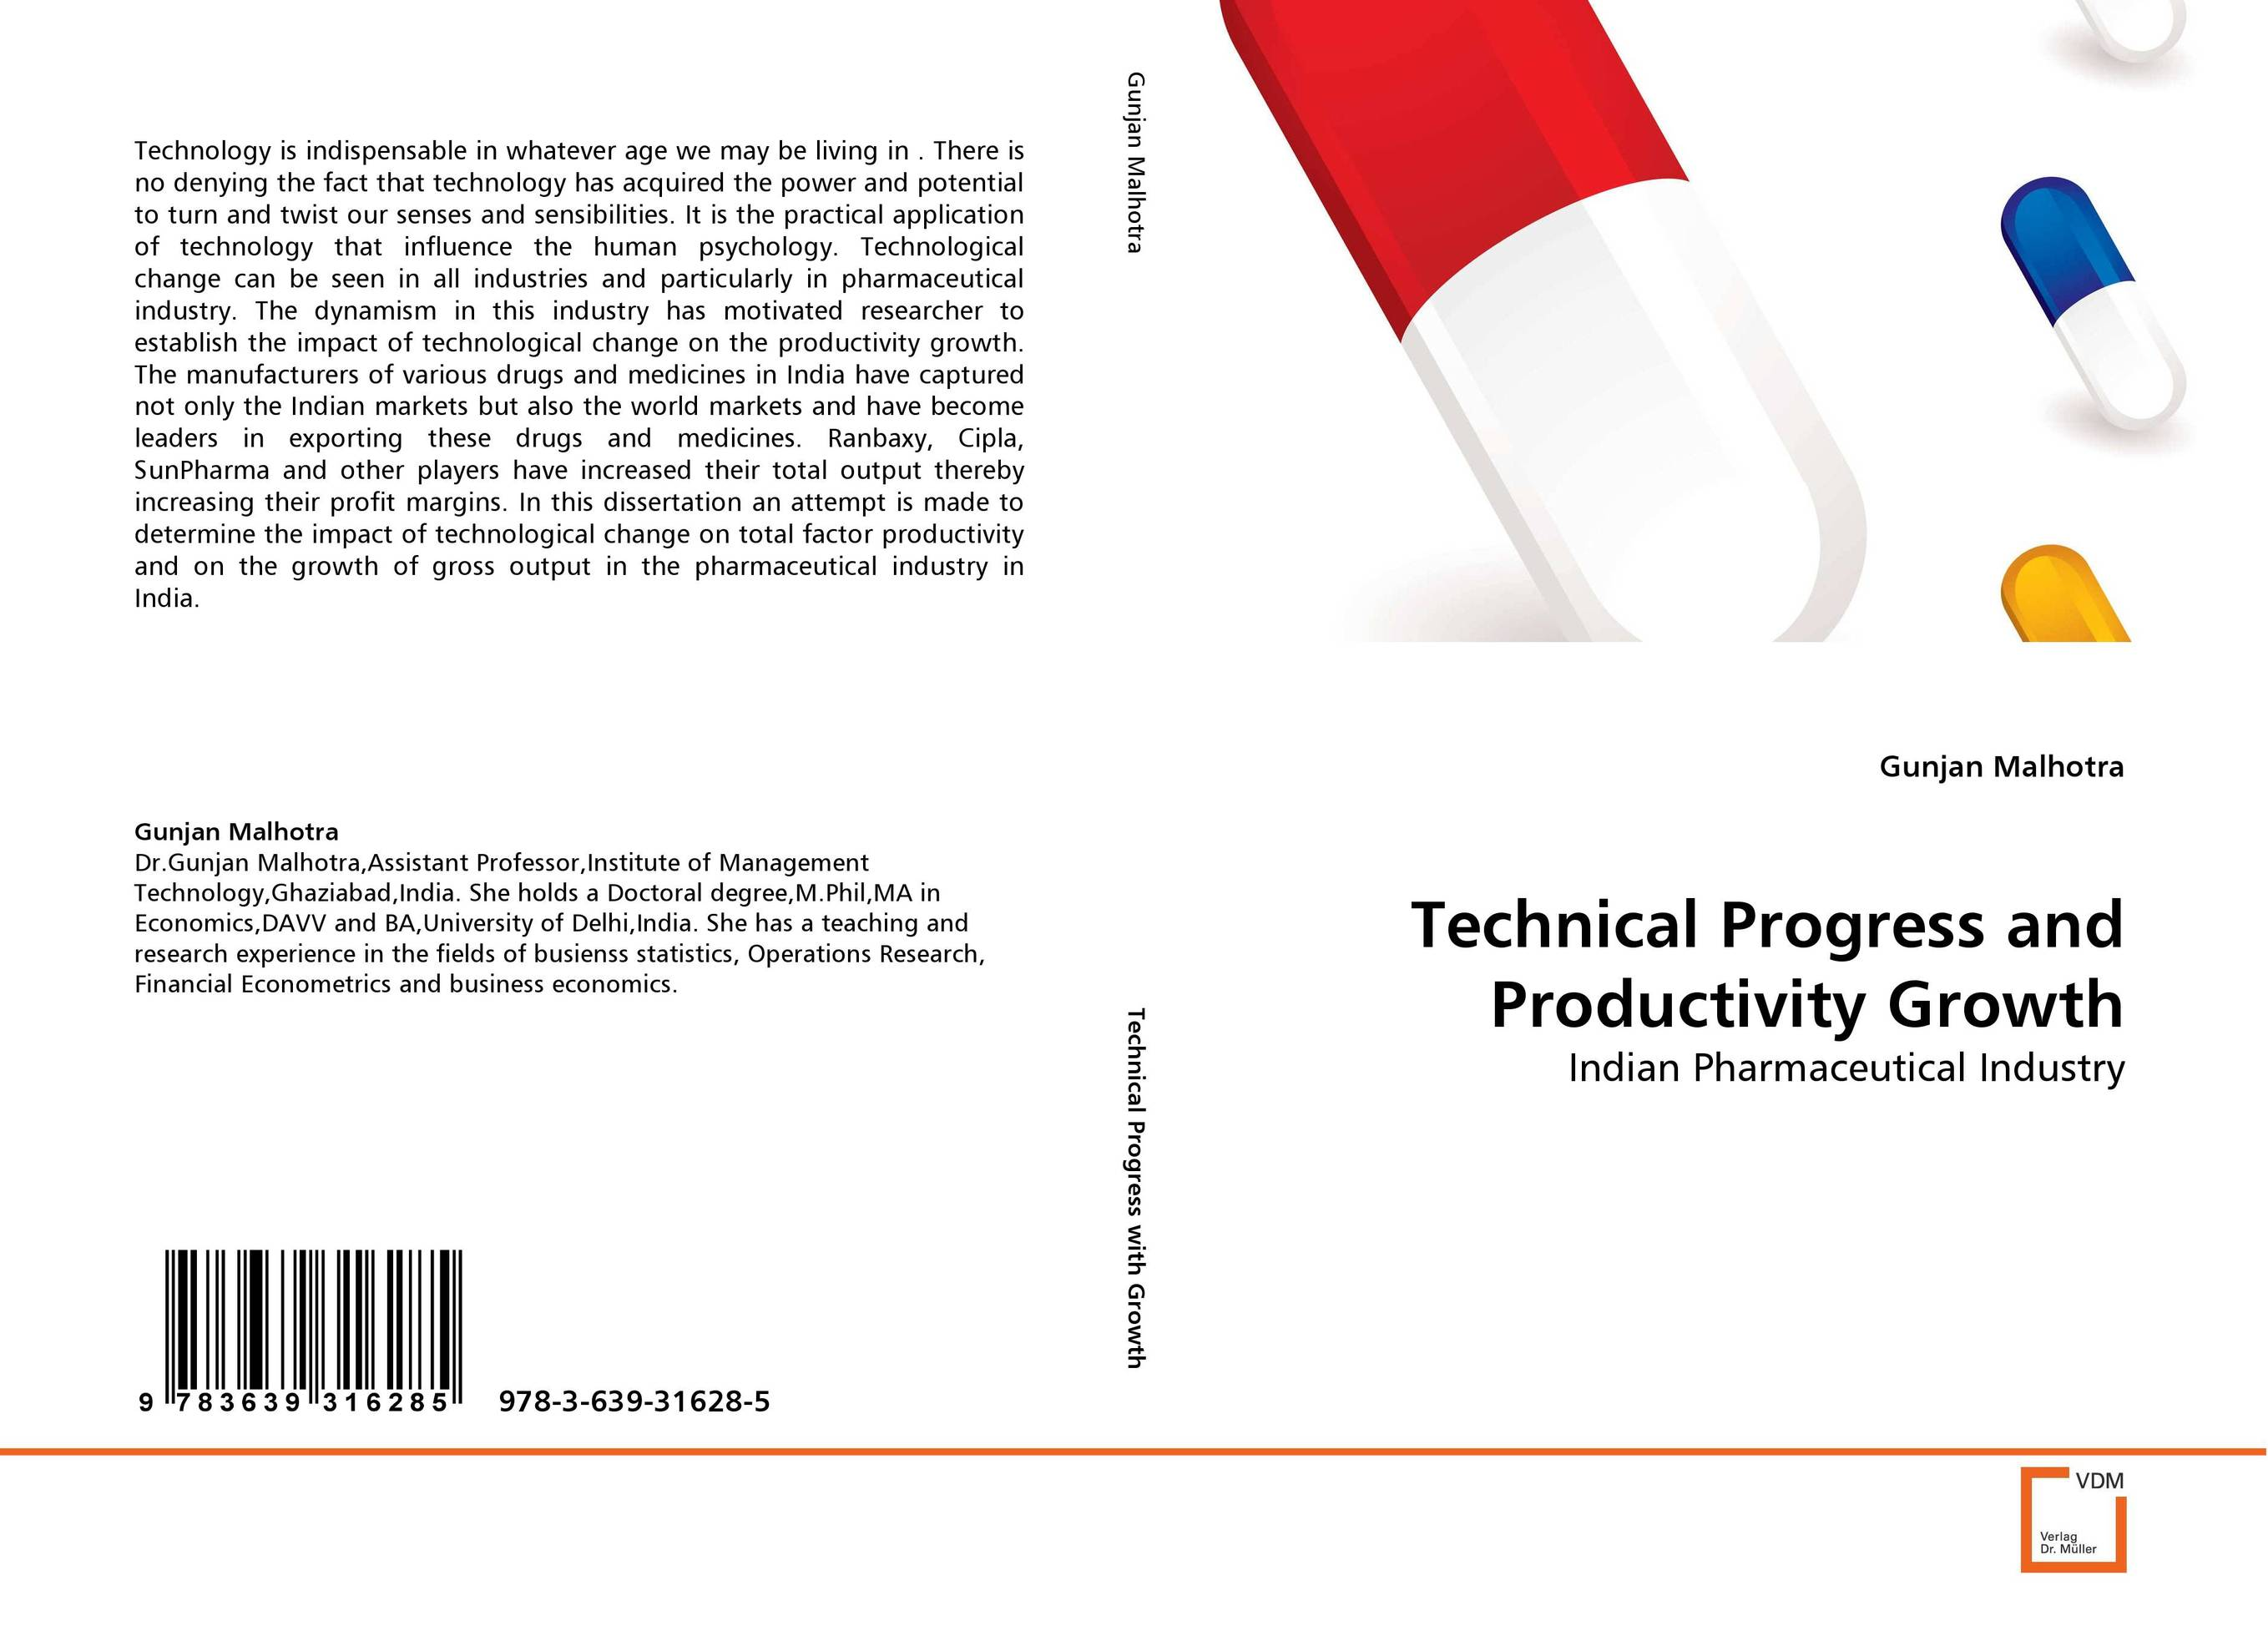 Technical Progress and Productivity Growth